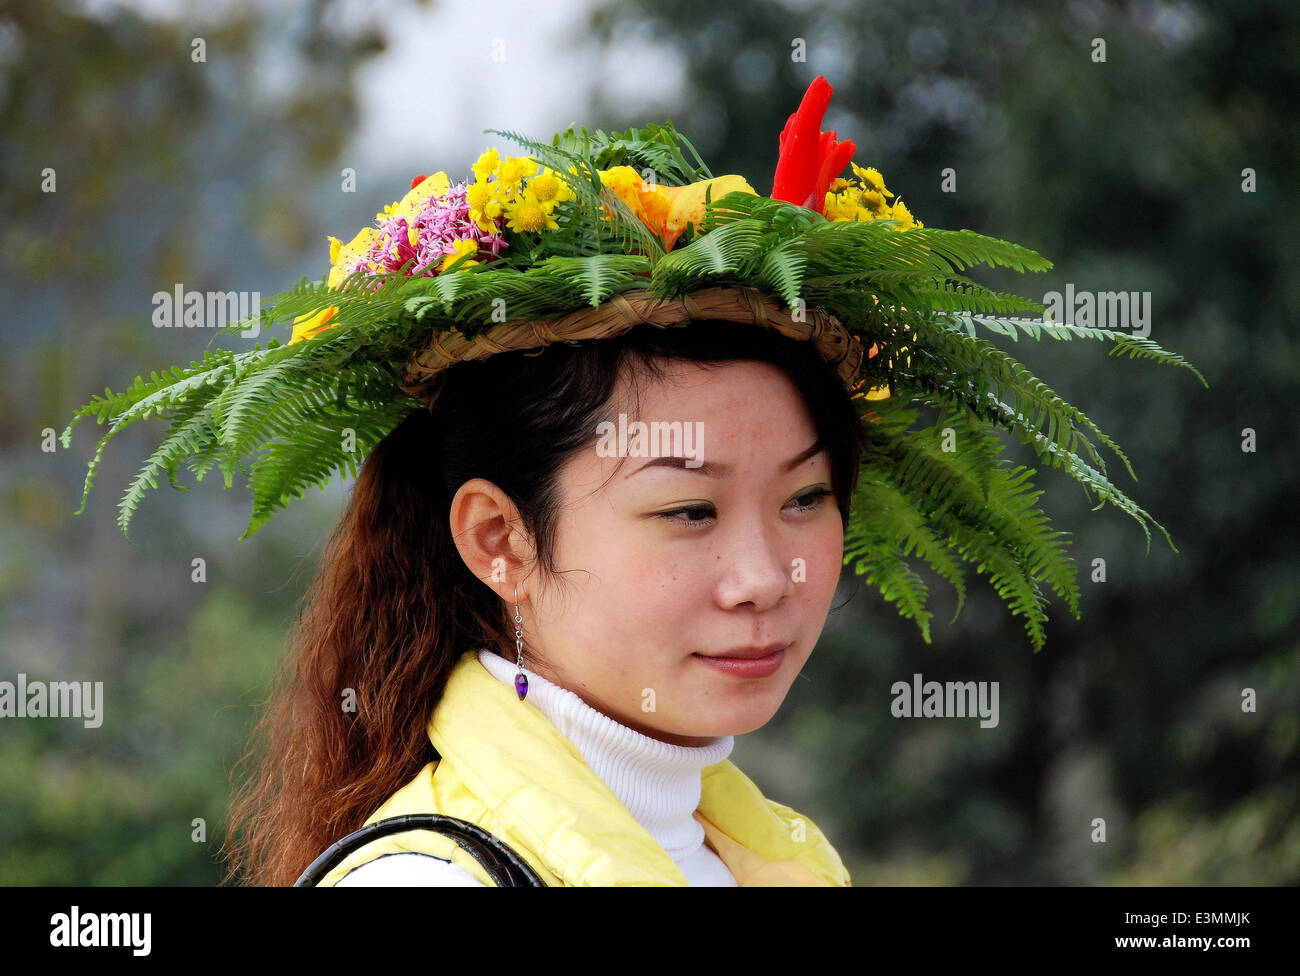 Huang Long Xi, China: Young Woman wearing a floral wreath hat - Stock Image